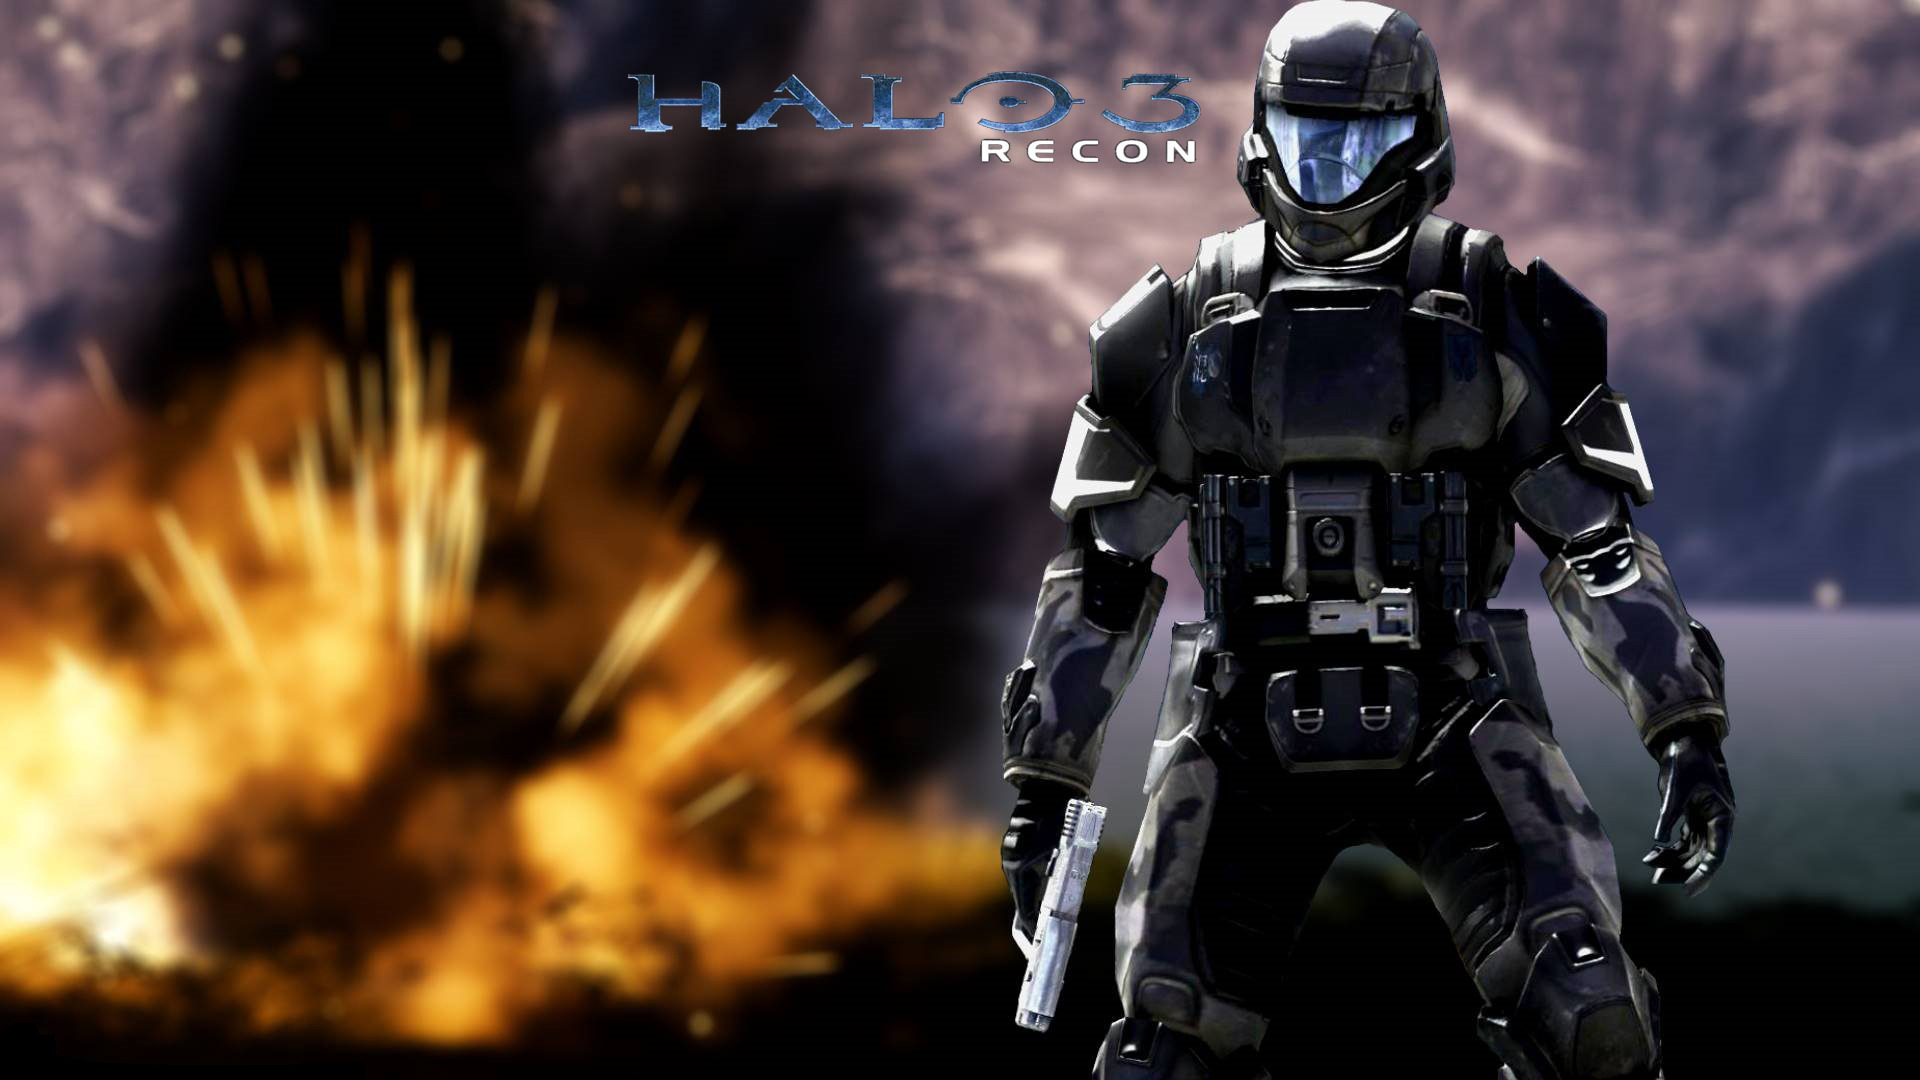 Halo 3 Wallpapers 100% Quality HD 1920x1080.